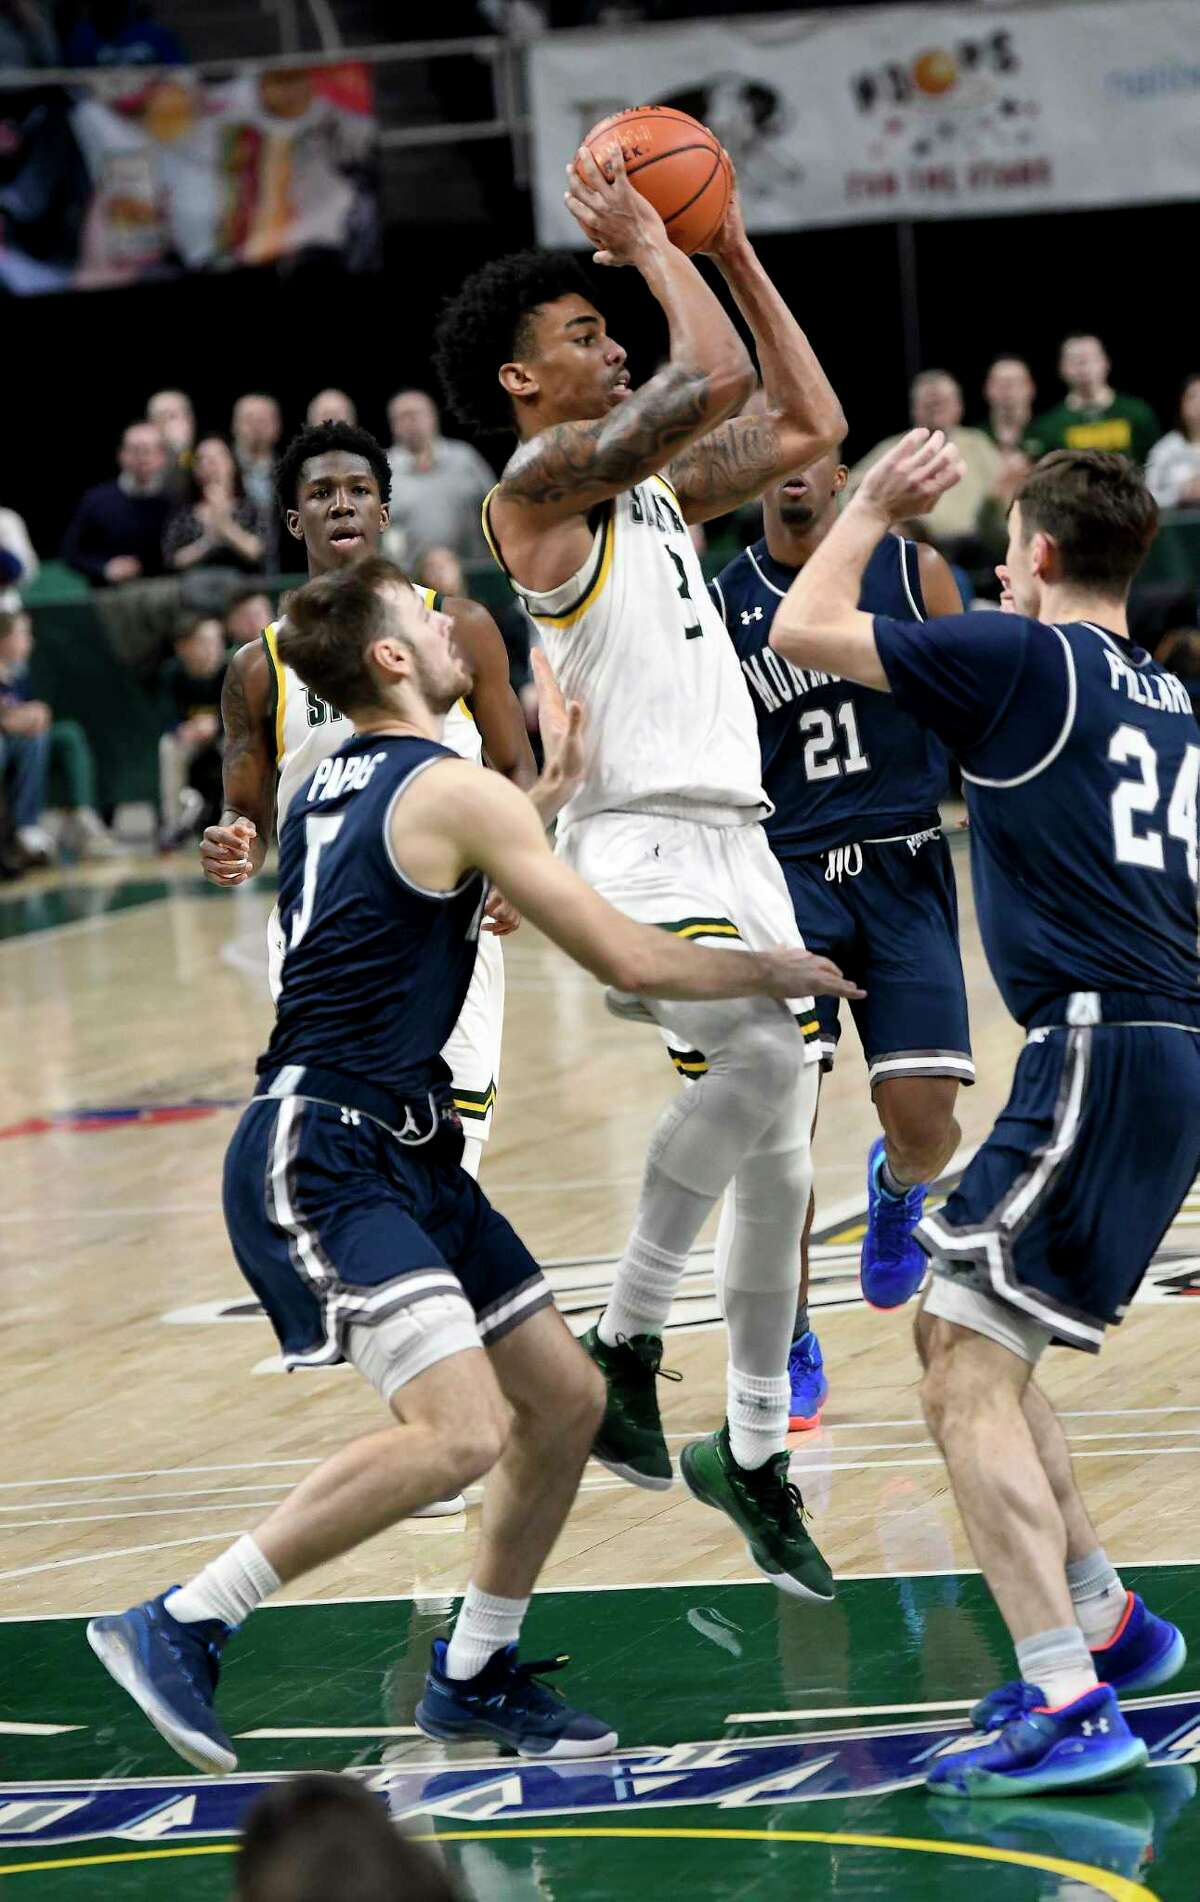 Siena guard Manny Camper (3) scores against Monmouth during the second half of an NCAA basketball game Friday, Jan. 3, 2020, in Albany, N.Y. Siena won 75-72. (Hans Pennink / Special to the Times Union) ORG XMIT: 010420_siena_HP110